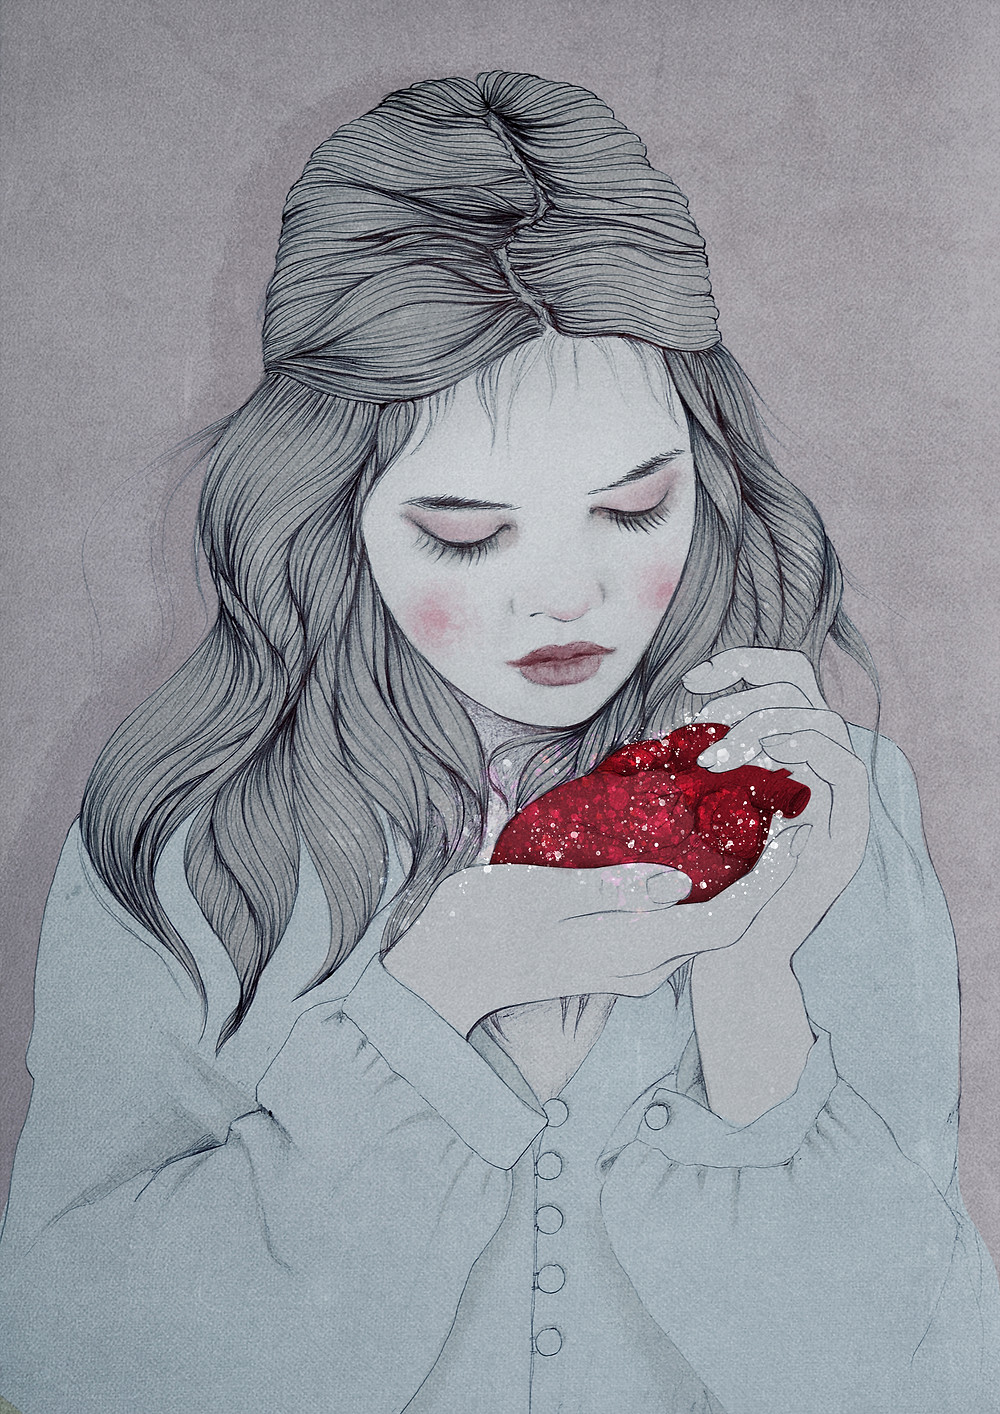 Heartbeats is an illustration for a story about a lost heart.